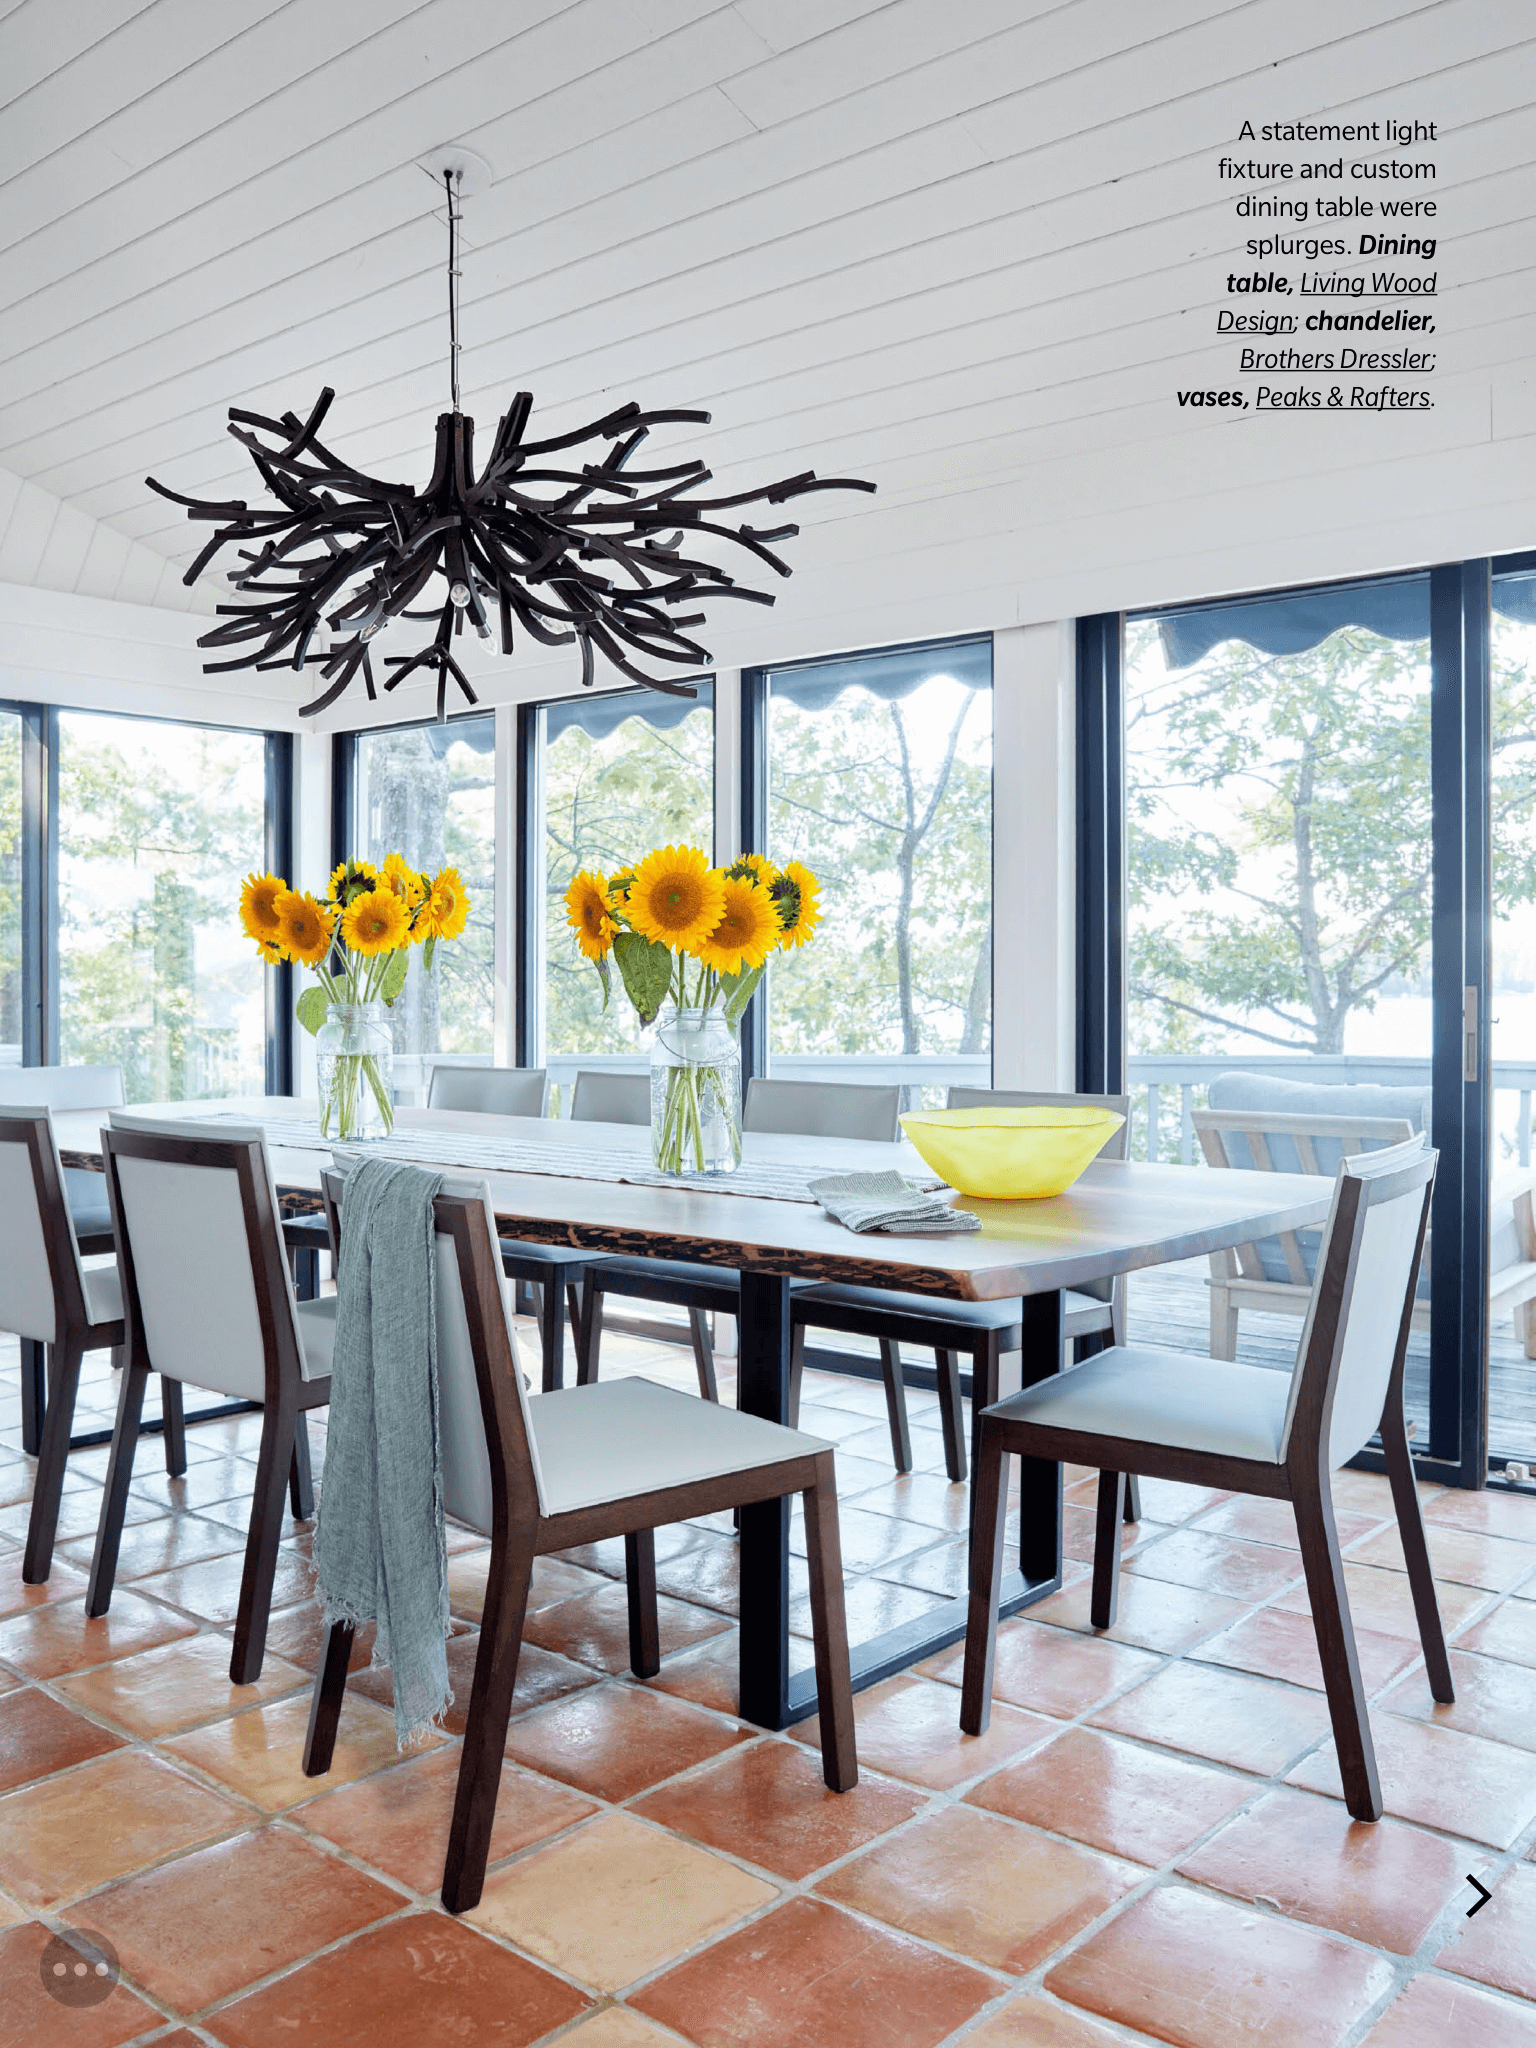 live edge black walnut dining table living wood design house & home magazine muskoka cottage